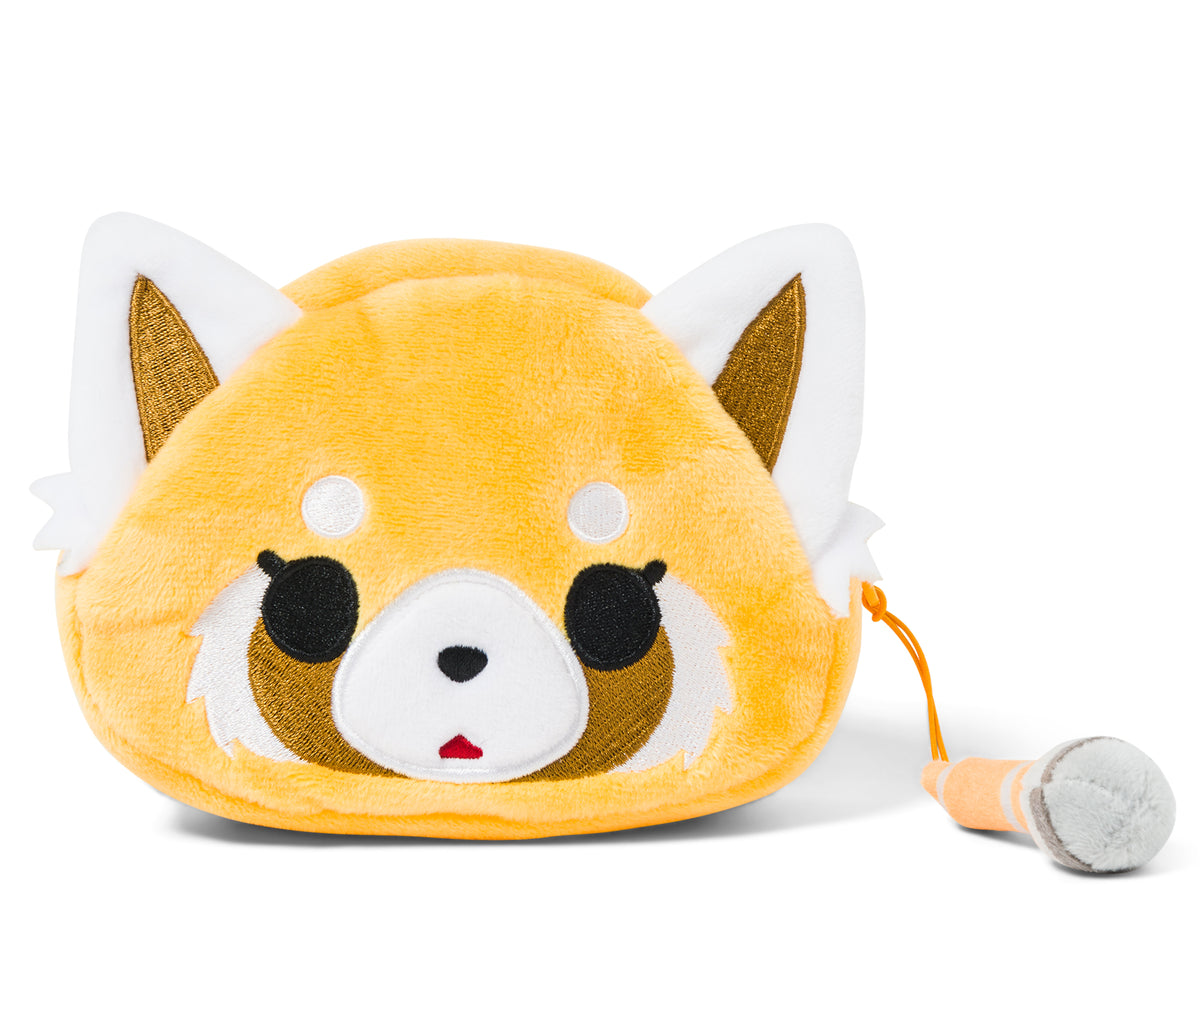 Aggretsuko Plush Coin Purse Karaoke